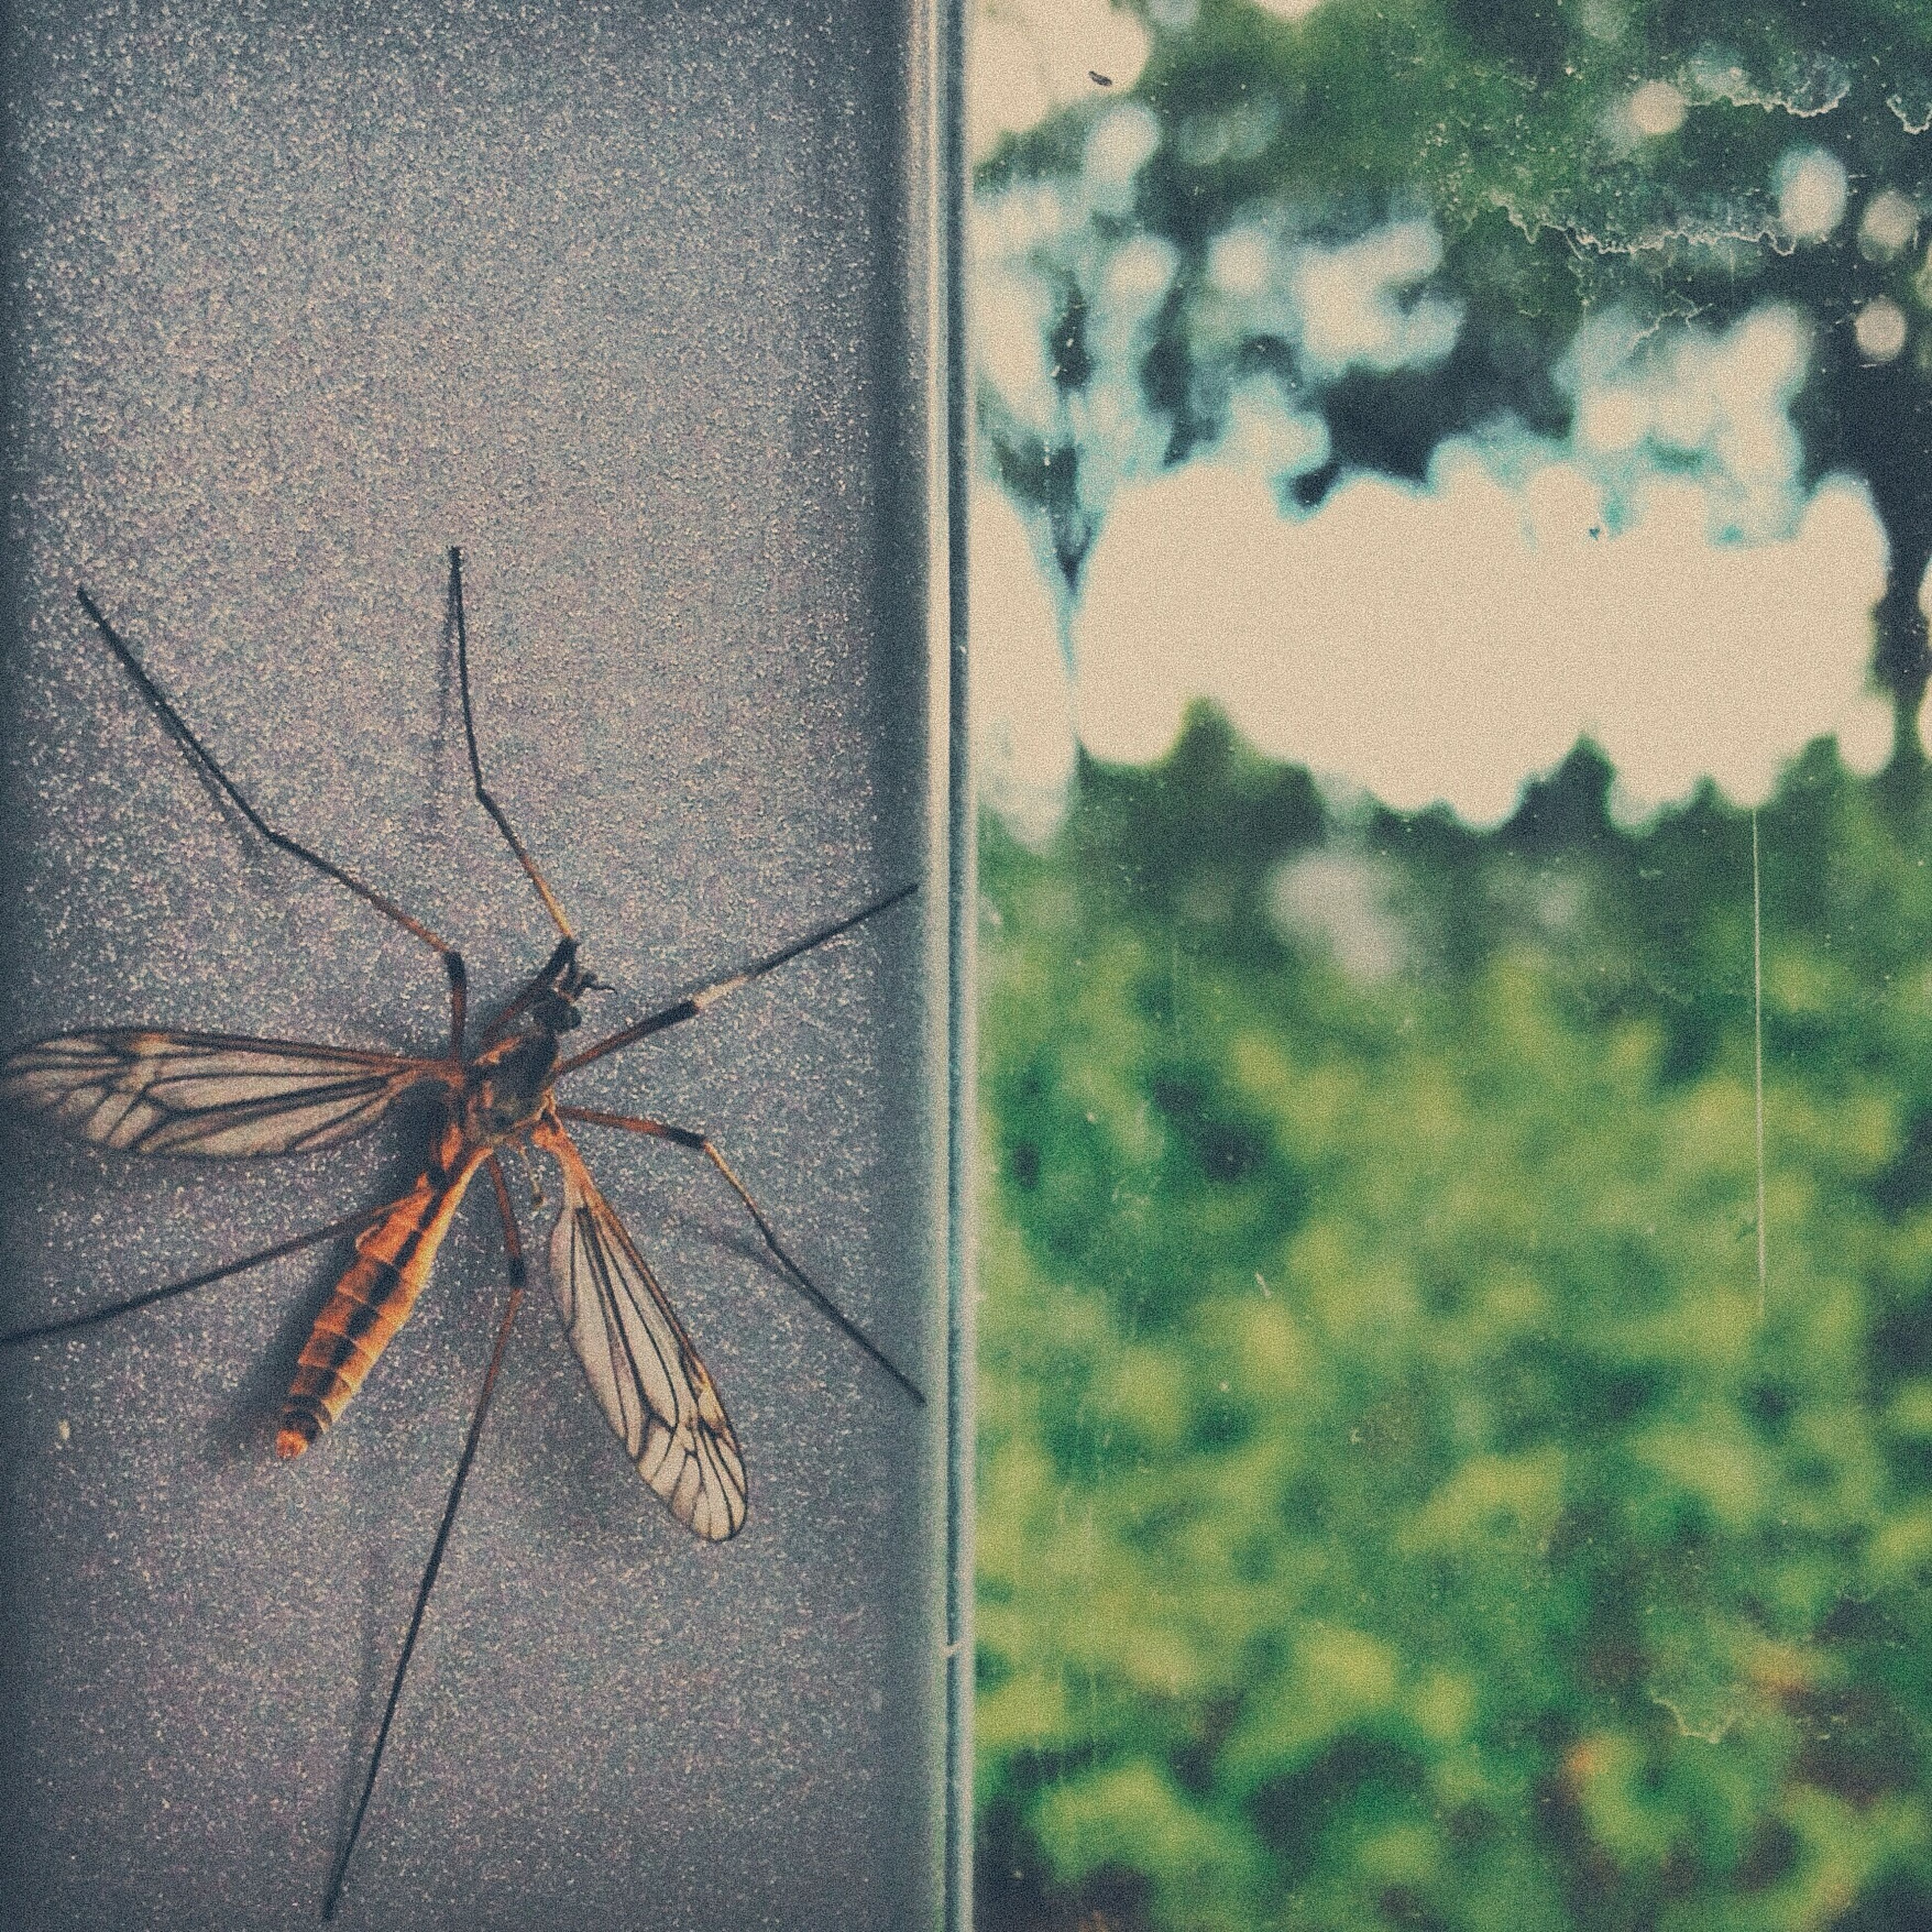 insect, animal themes, close-up, wall - building feature, one animal, animals in the wild, spider, day, outdoors, wildlife, high angle view, no people, window, spider web, death, damaged, nature, built structure, the end, textured